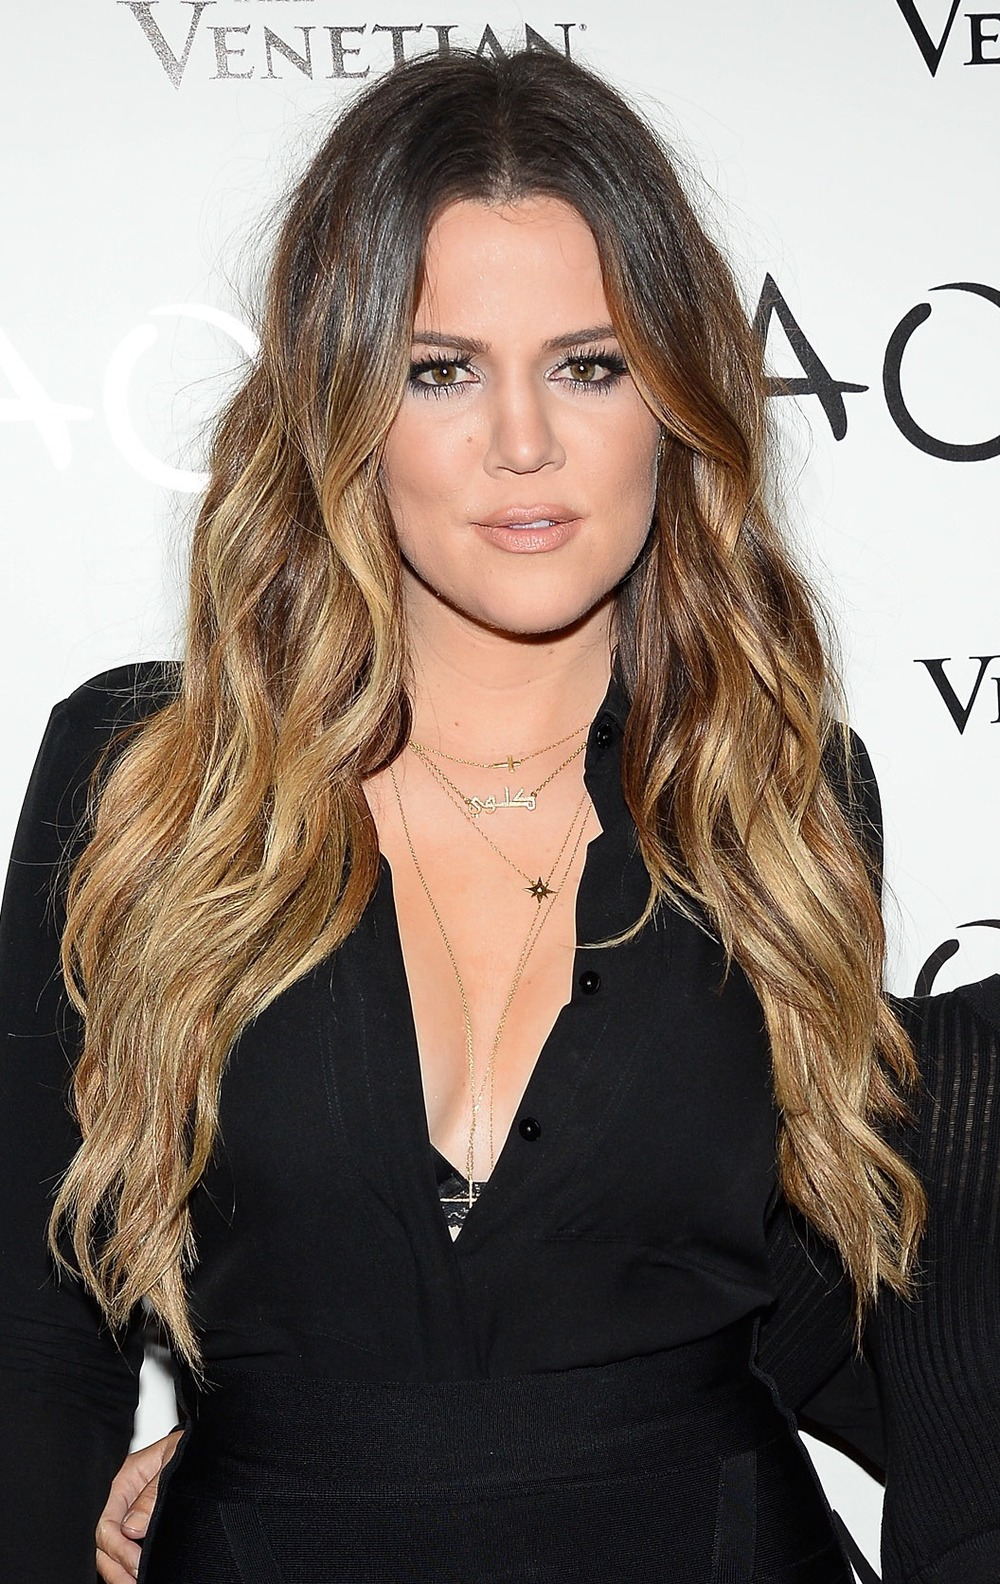 Khloe-Kardashian-Ombre-Hair-Wallpaper-HD-Resolution.jpg